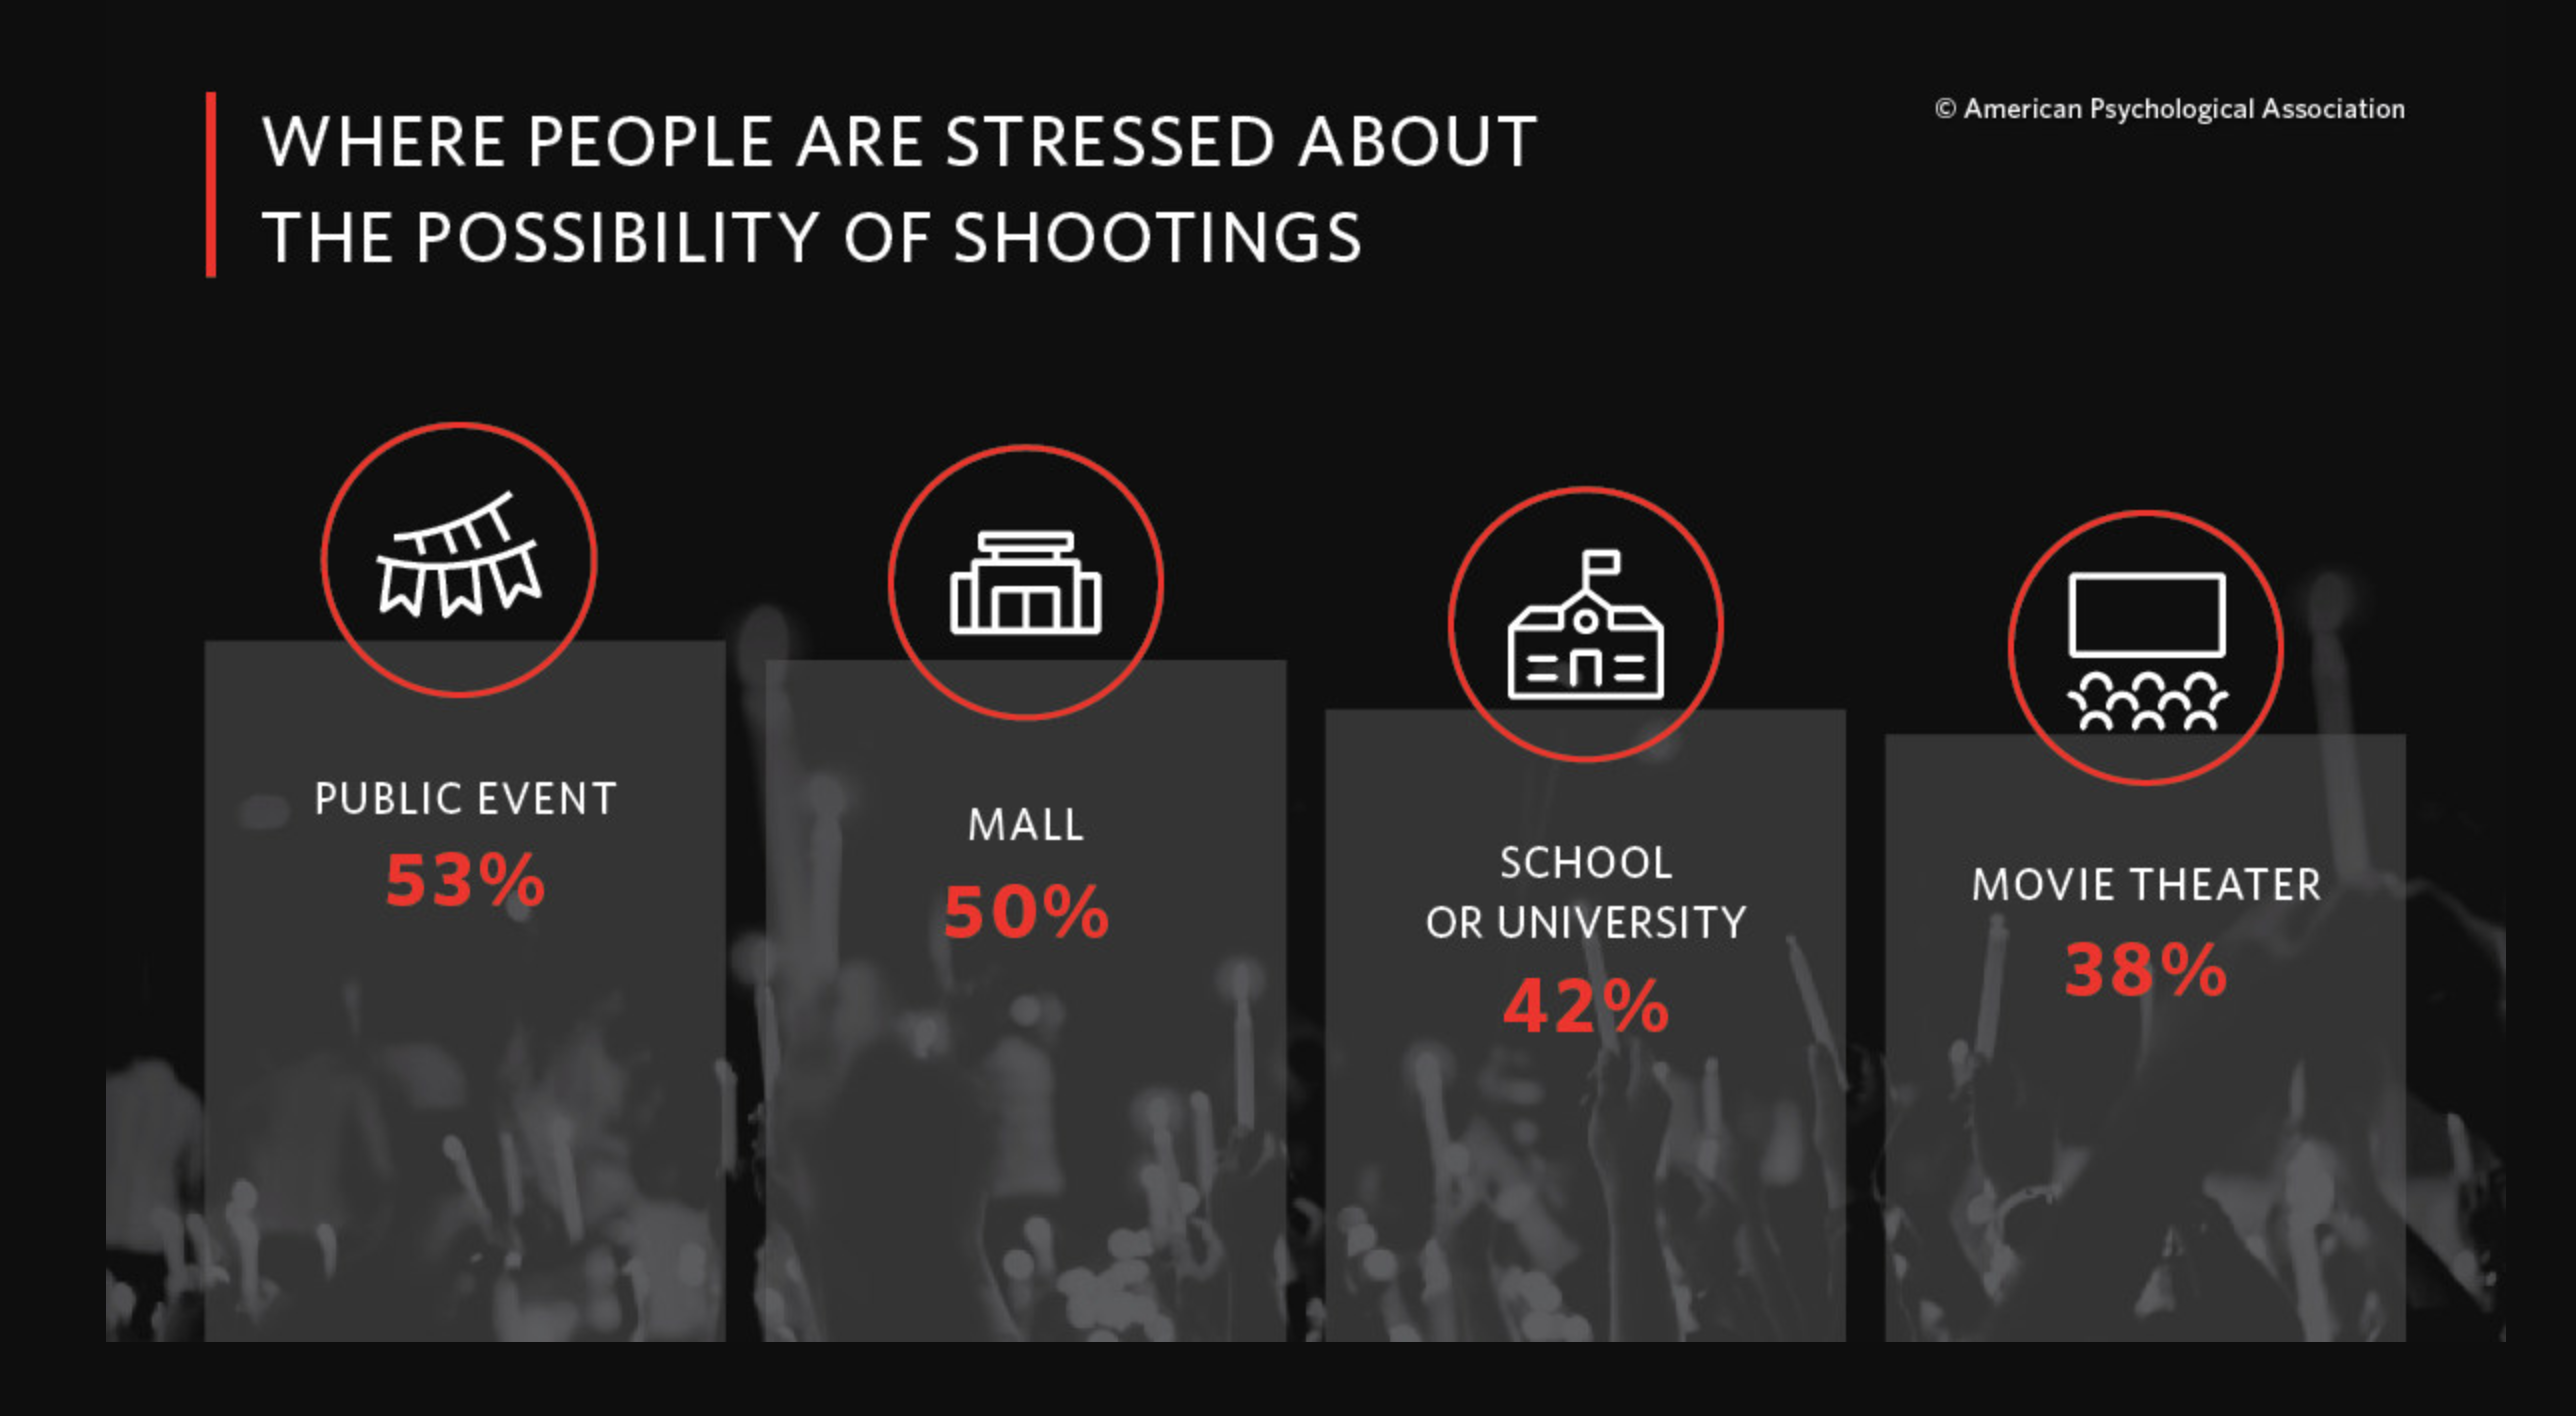 Majority Of Americans Stressed Over Being In A Mass Shooting - Trump To Blame?